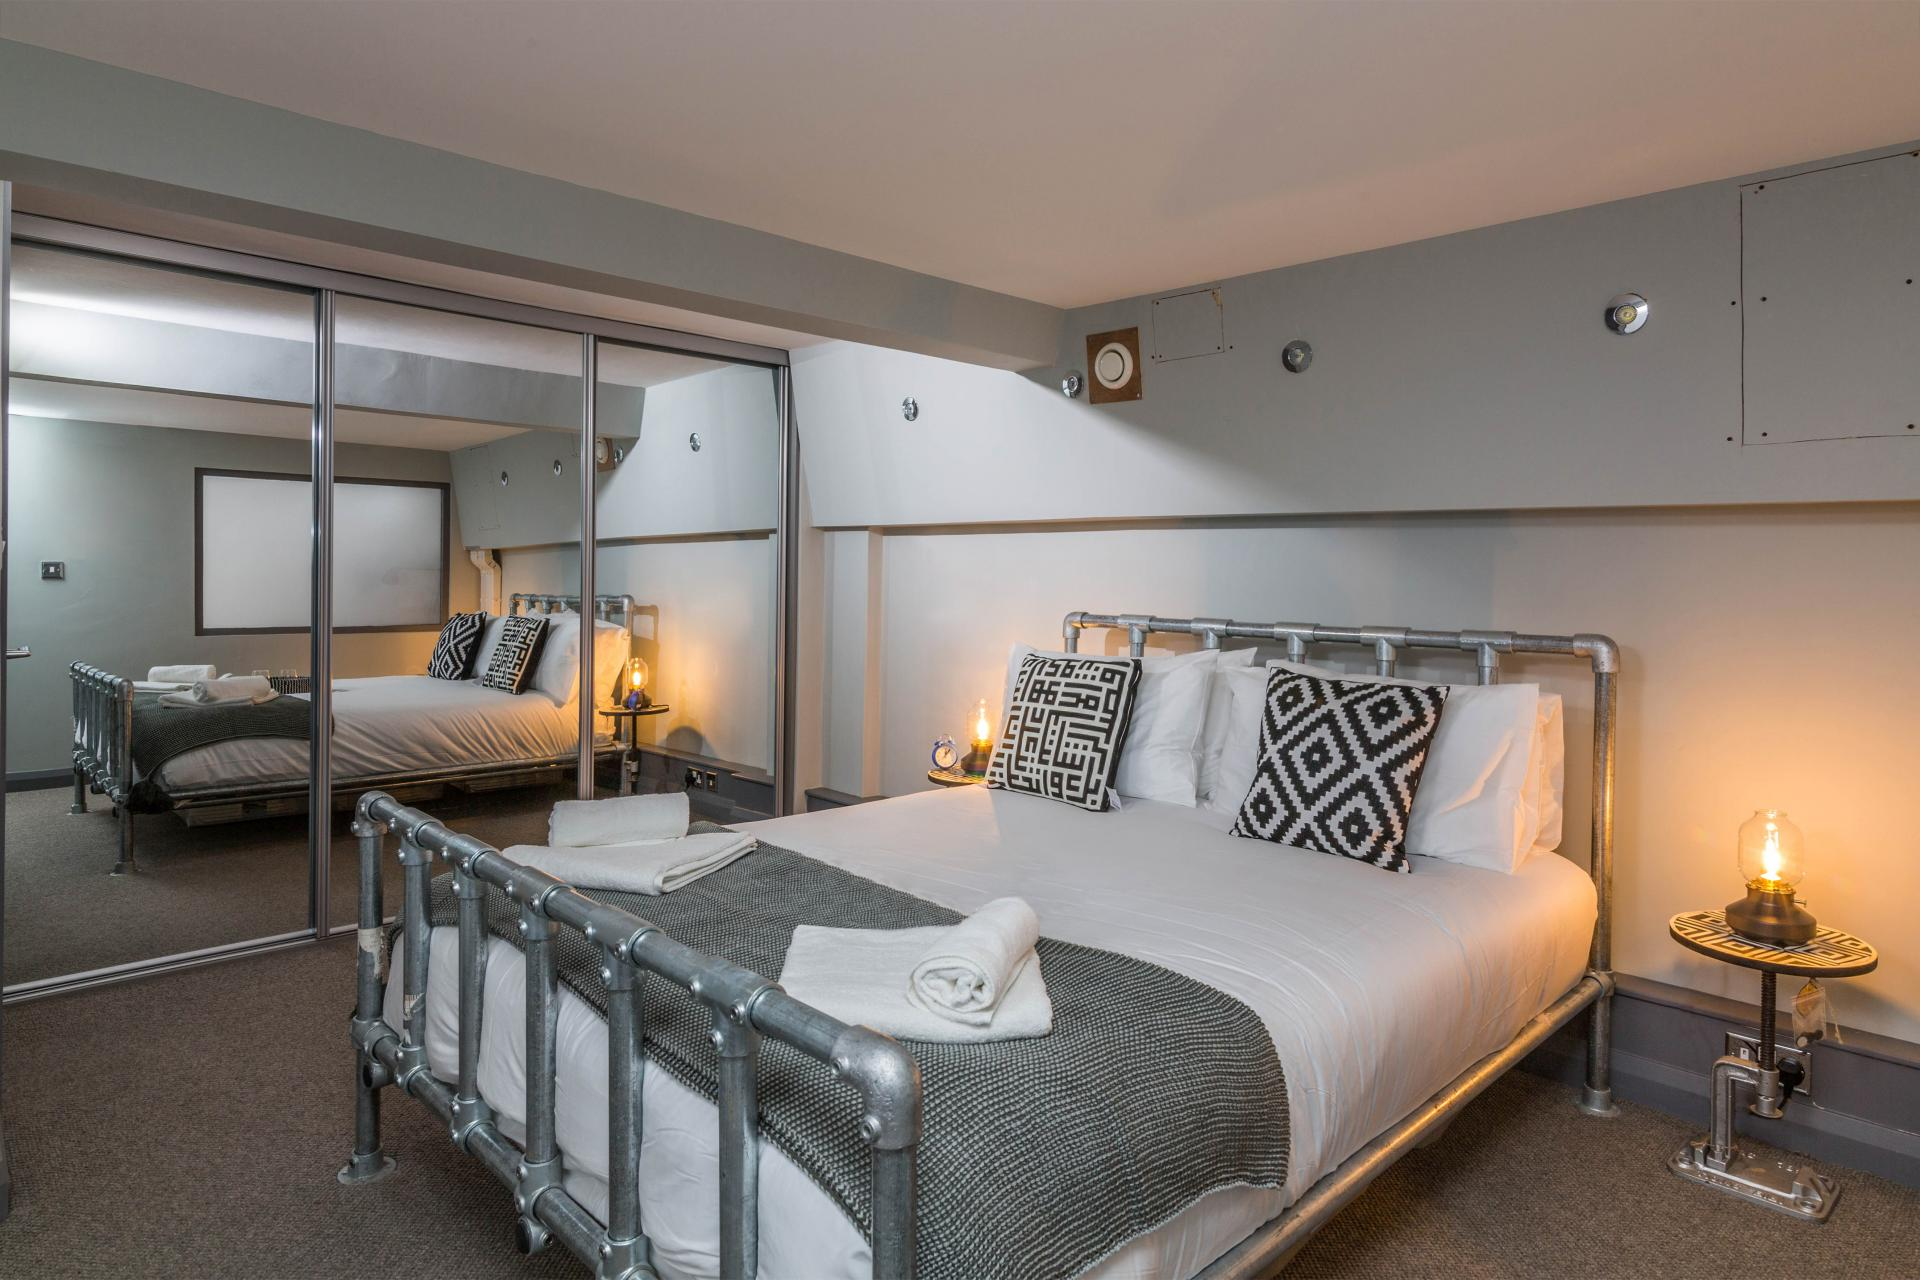 Bed at Crusader House Apartment, Hockley, Nottingham - Citybase Apartments